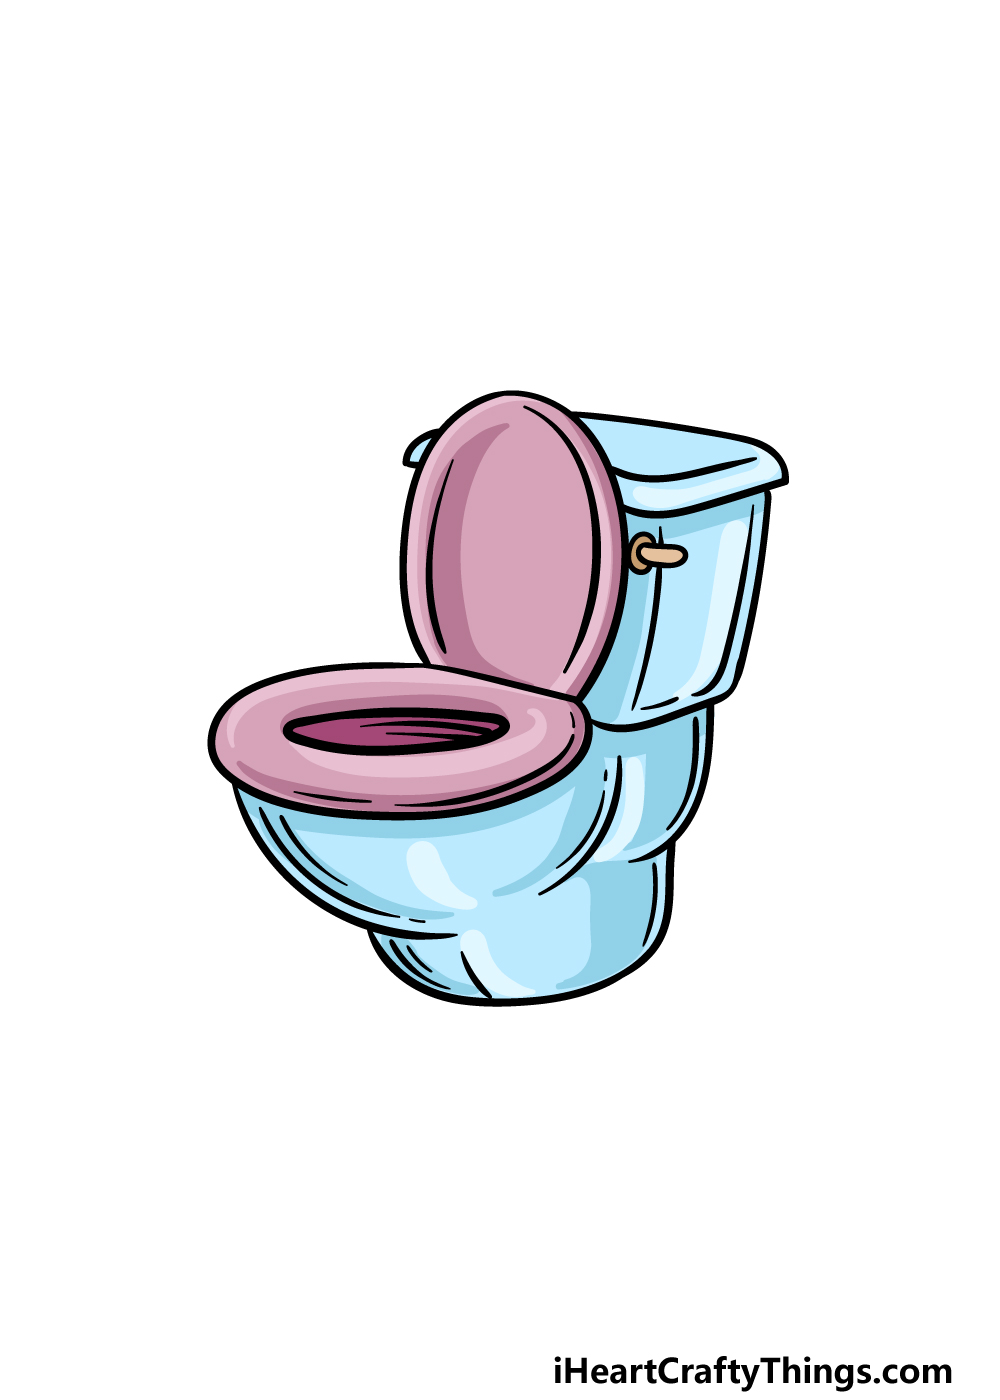 drawing a toilet step 5